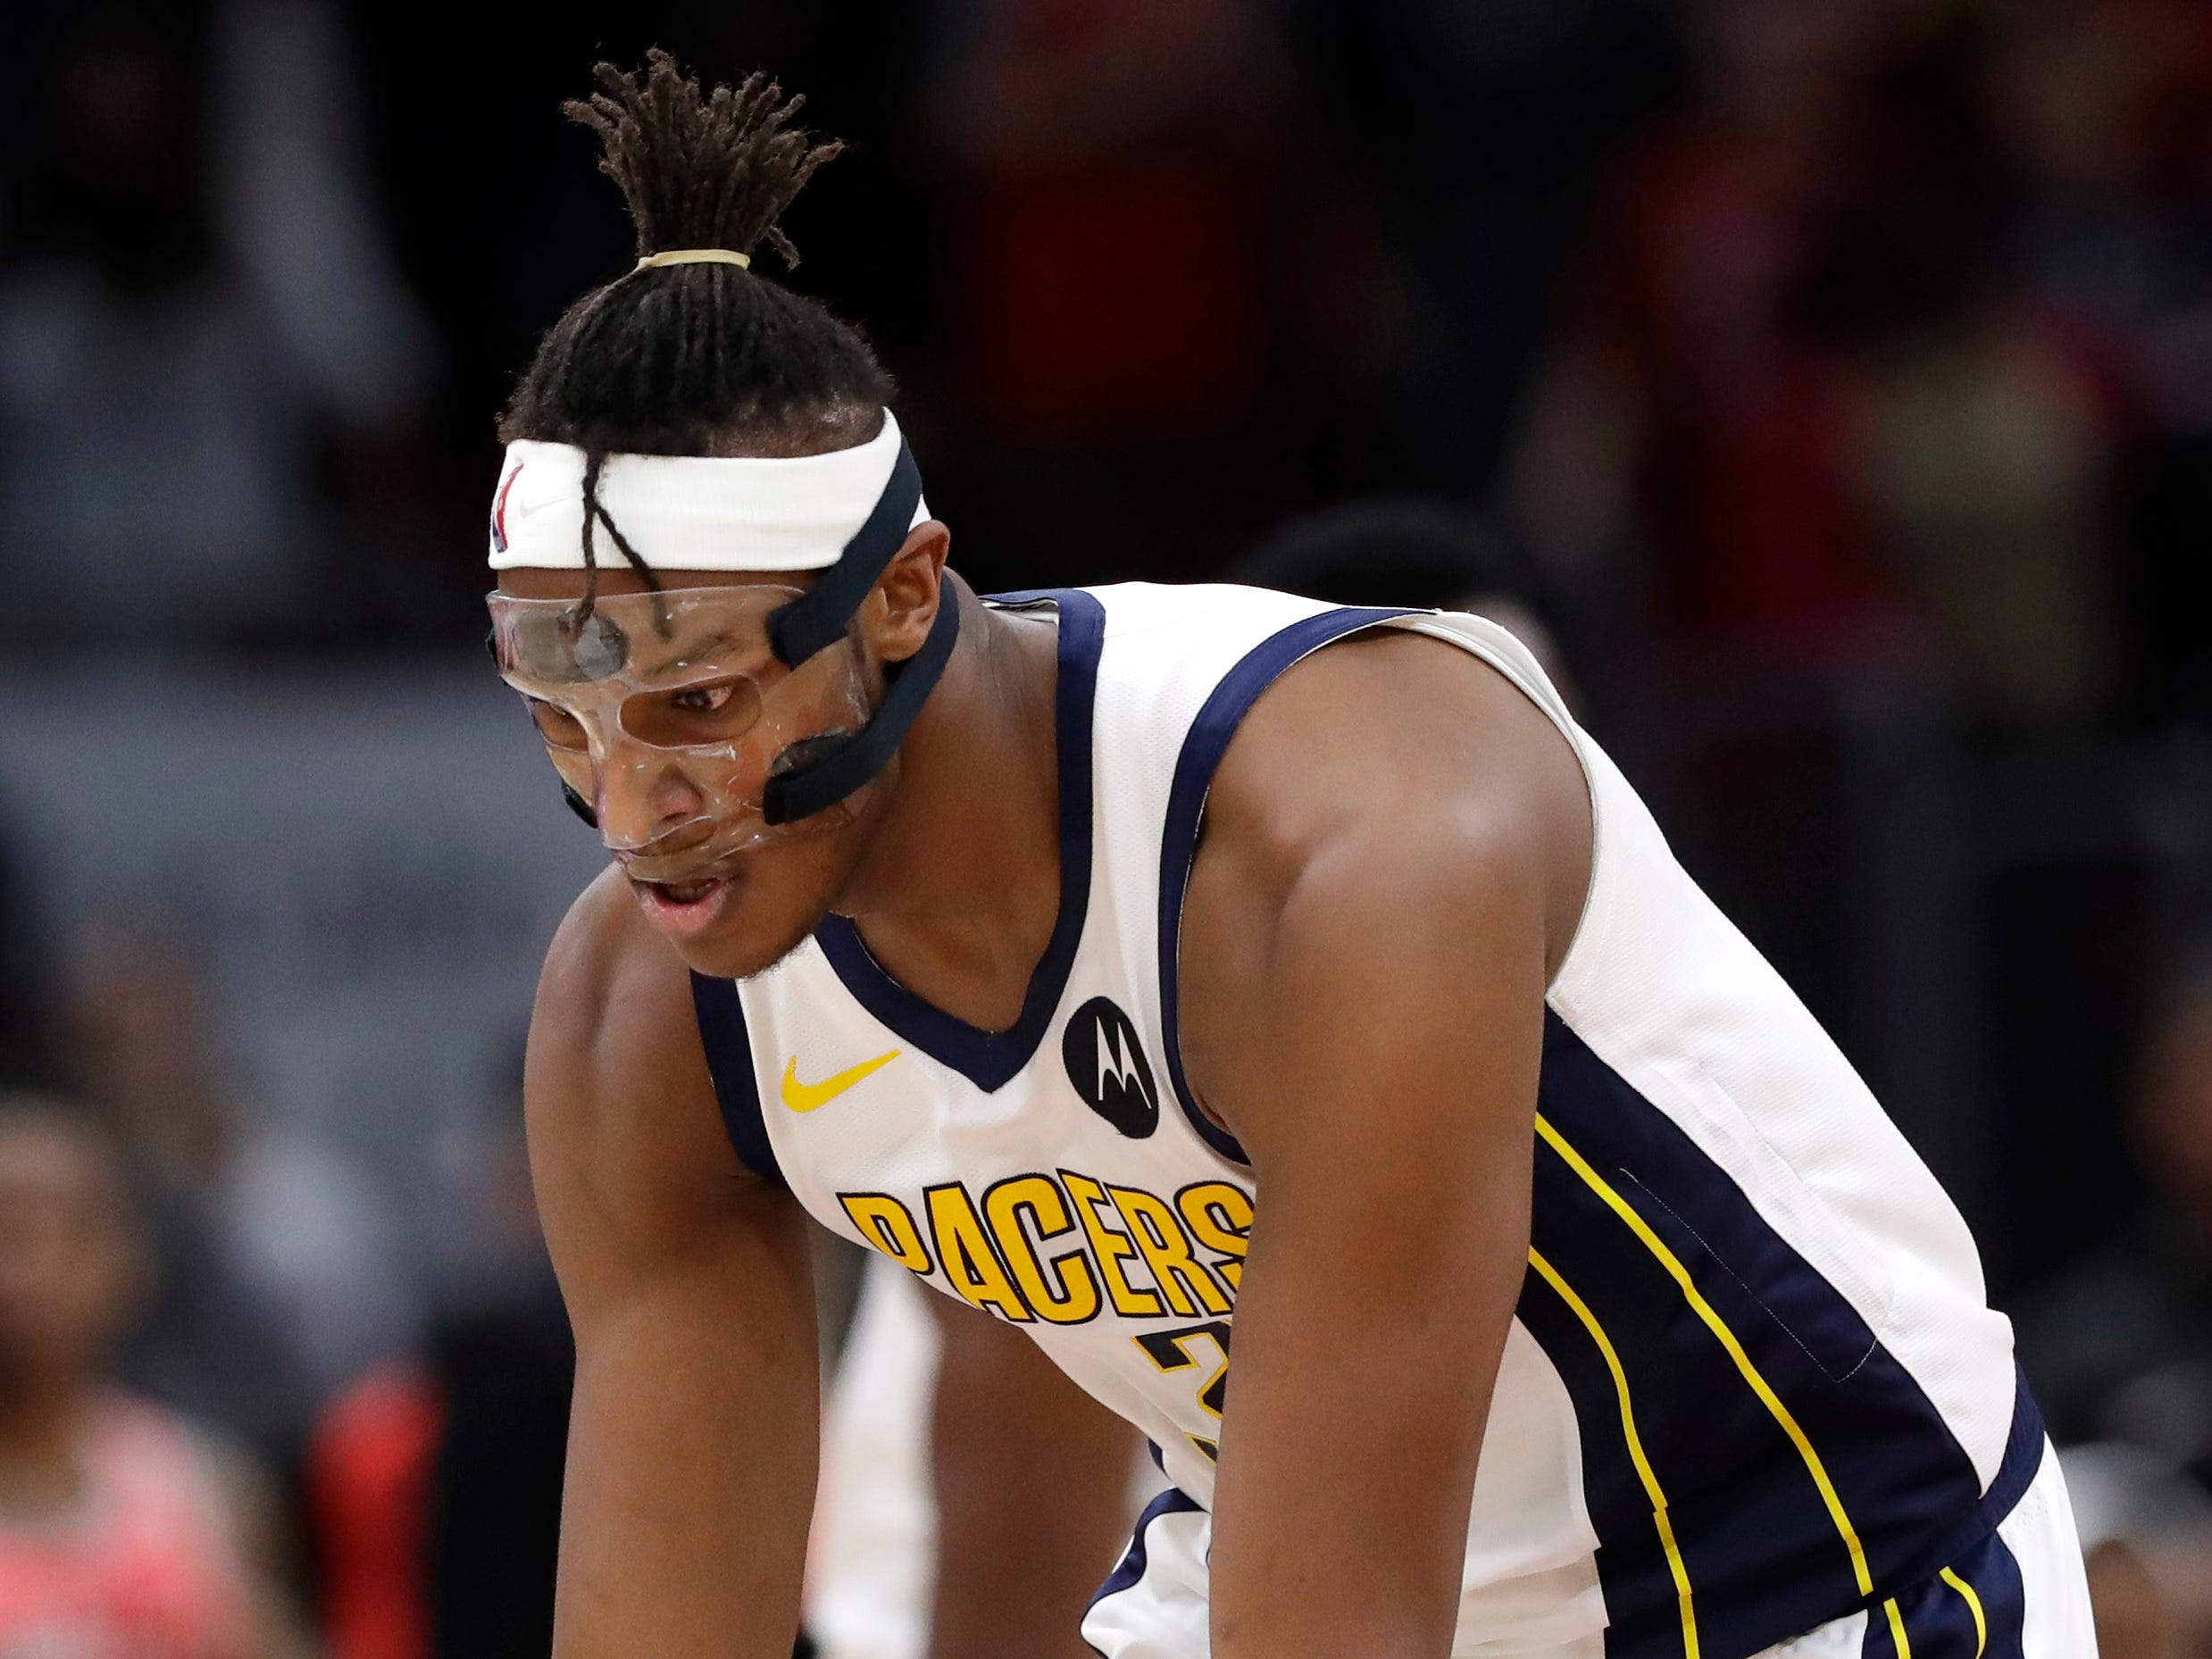 Indiana Pacers center Myles Turner reacts after he made a three-point basket against the Chicago Bulls during overtime of an NBA basketball game Friday, Jan. 4, 2019, in Chicago. (AP Photo/Nam Y. Huh)